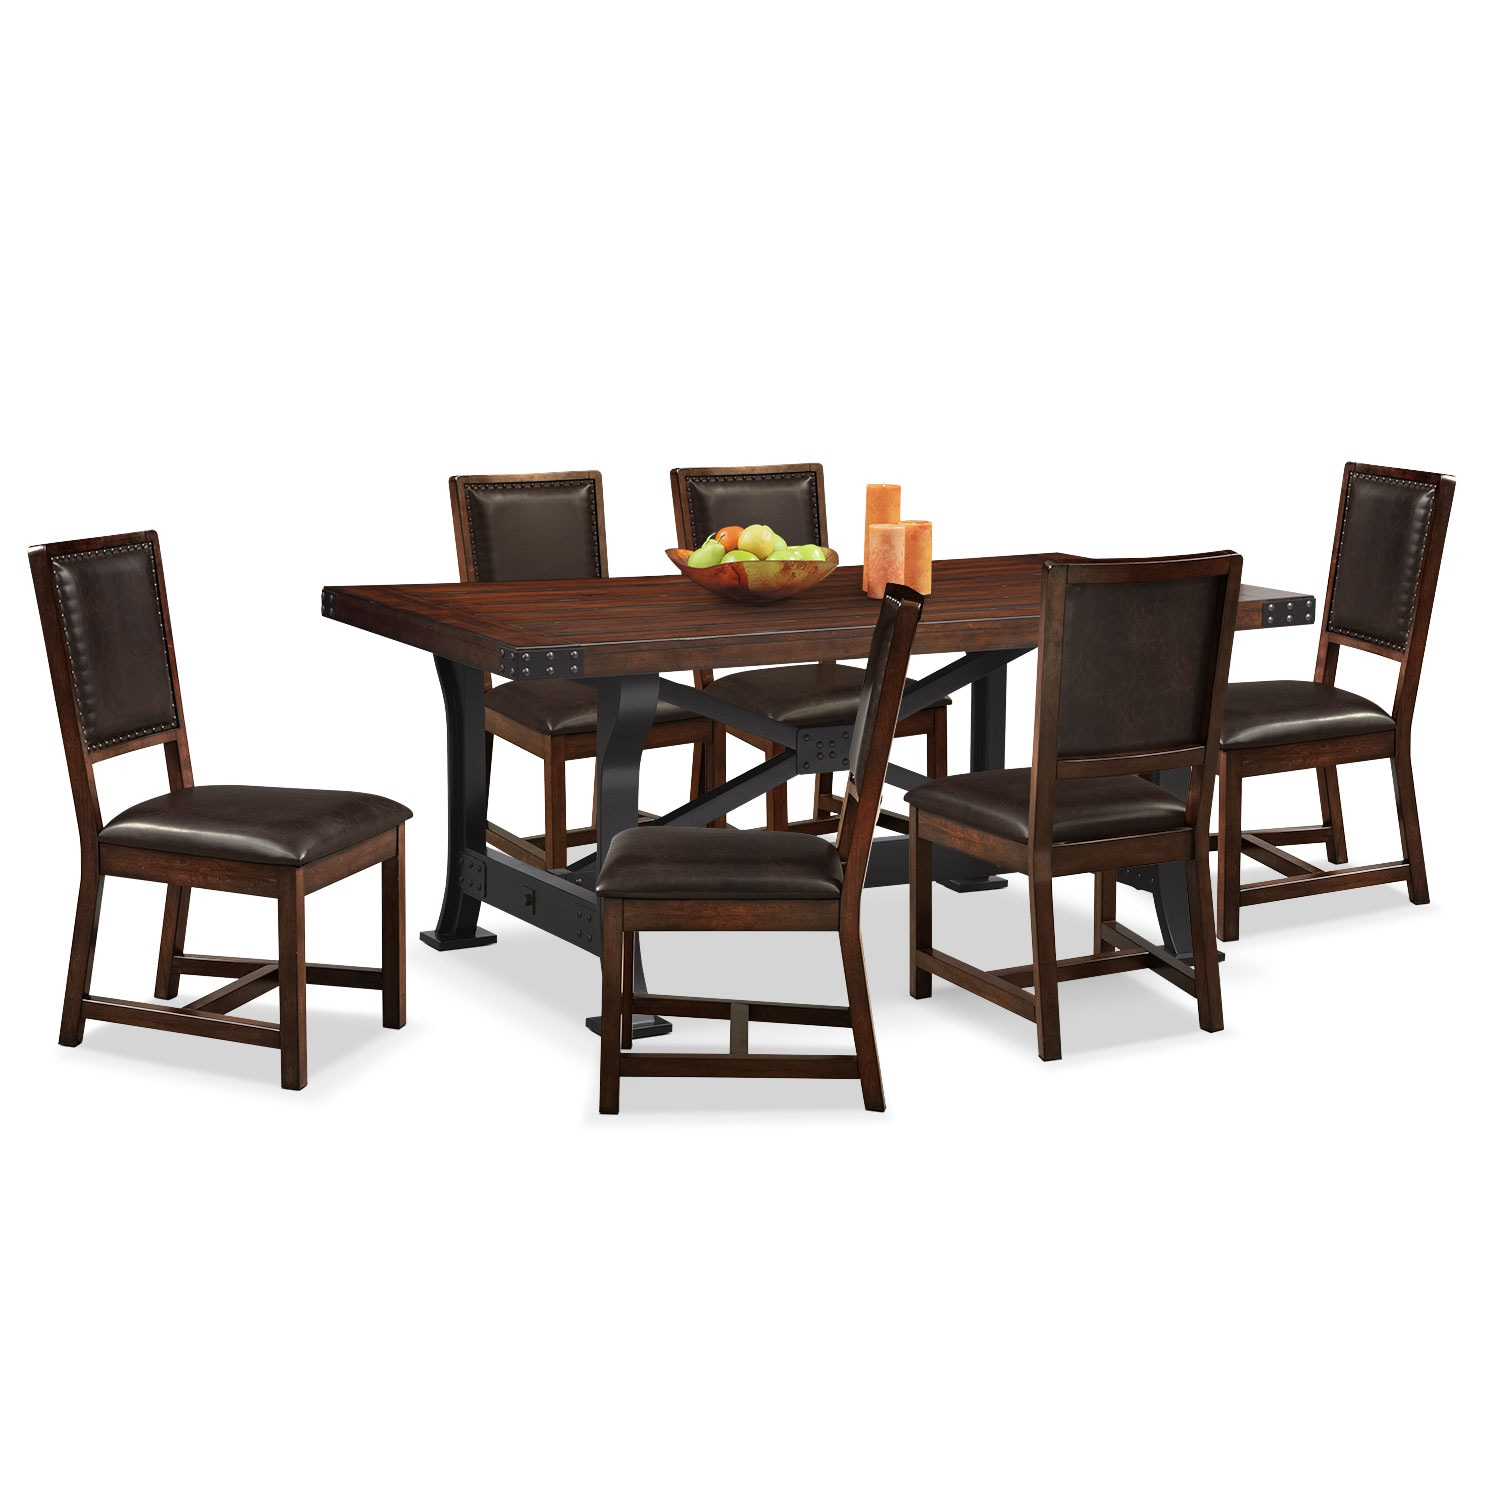 Newcastle Dining Table and 6 Side Chairs - Mahogany | Value City ...